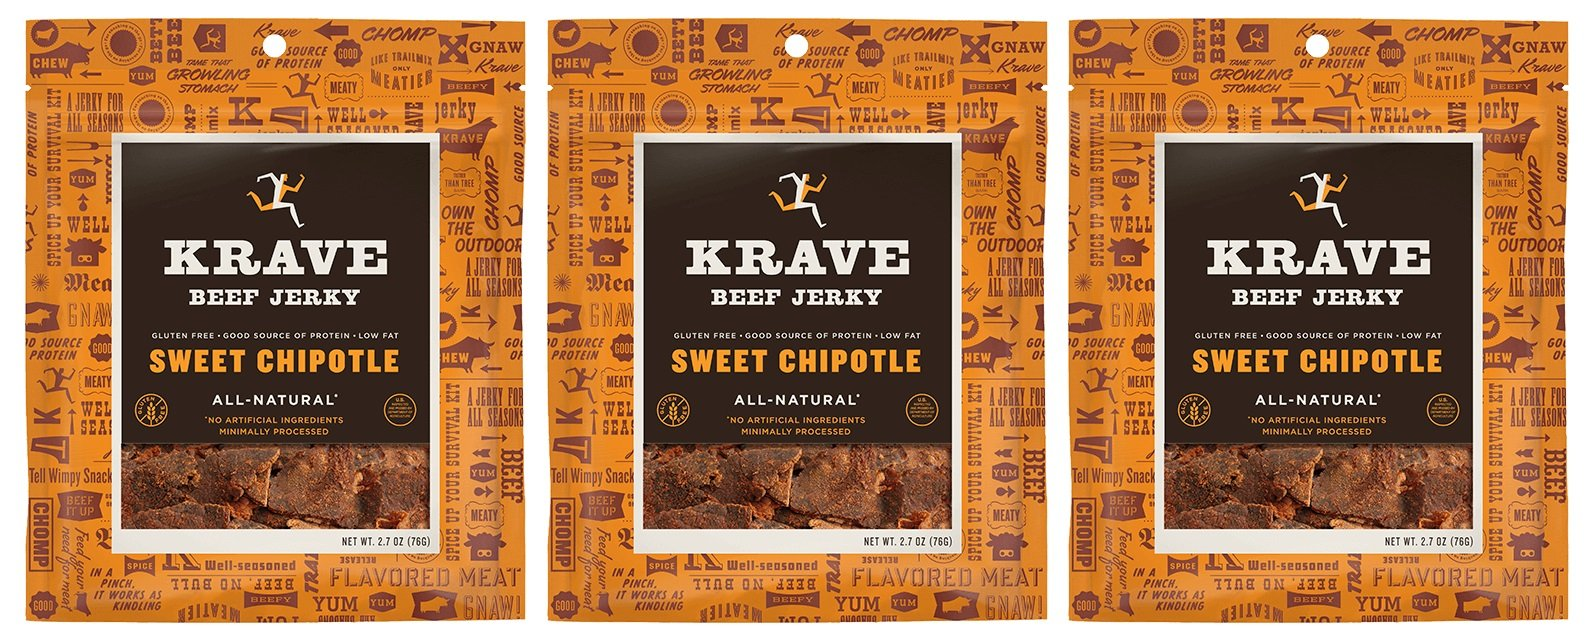 All Natural Beef Jerky - Sweet Chipotle - 2.7 Ounces Each (Pack of 3)